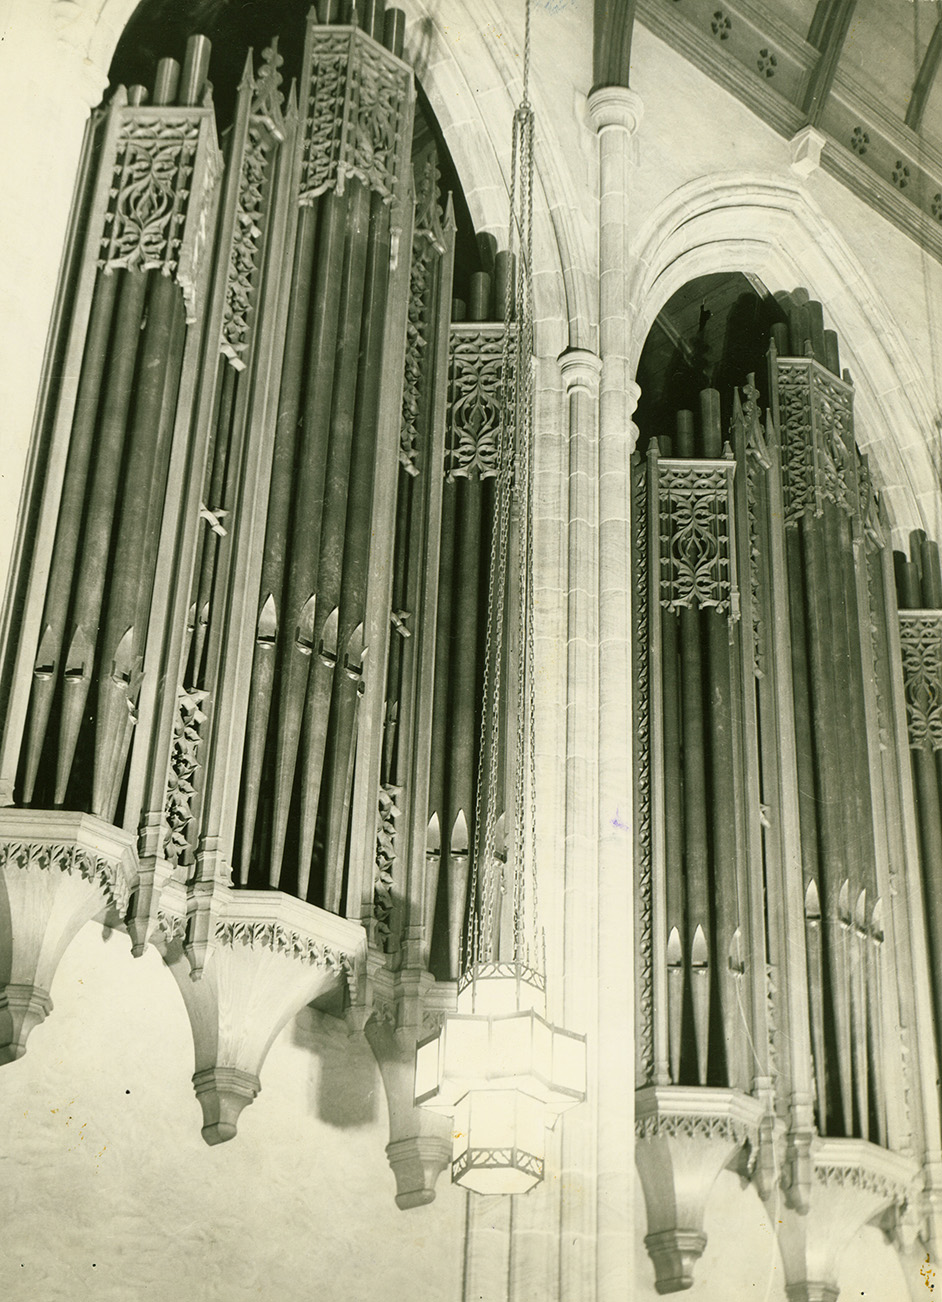 Pipes from the Skinner organ, circa 1940